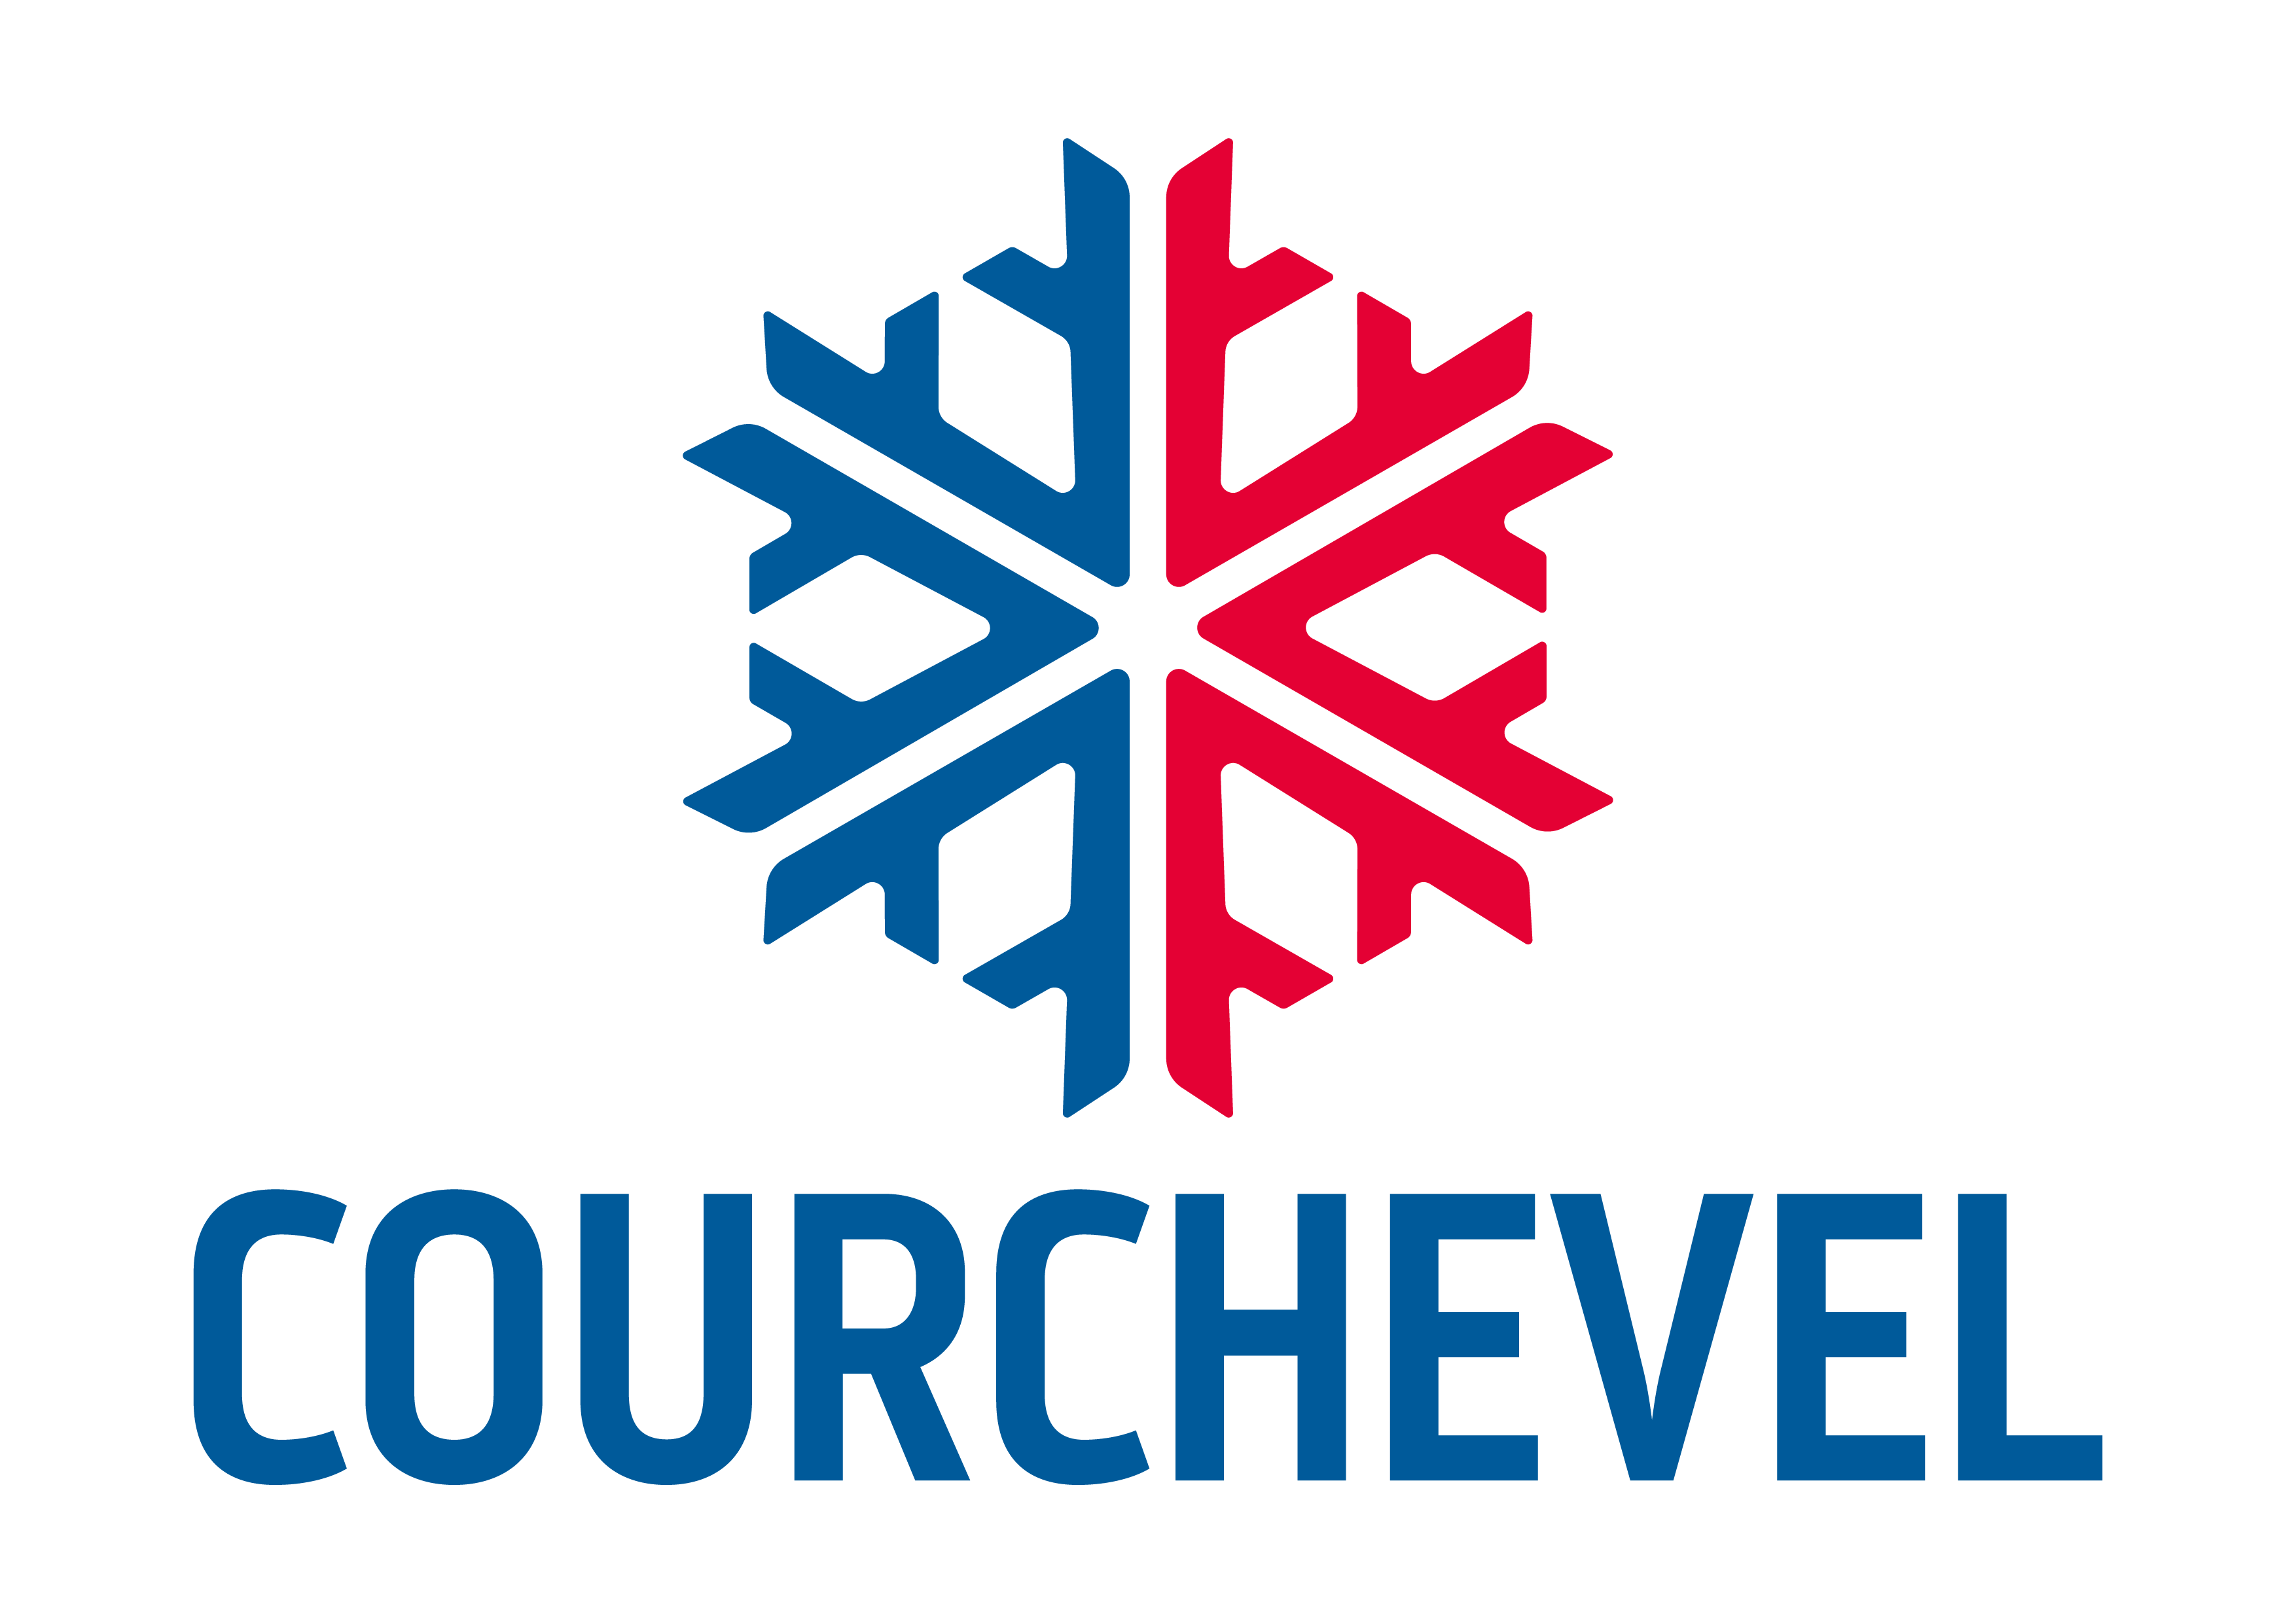 "{""id"":1,""name"":""Courchevel"",""logo"":""\/stations\/station-courchevel.svg"",""content"":""<p>An elegant, modern resort situated in the heart of Les 3 Vall\u00e9es ski area, Courchevel never ceases to evolve and redefine even its most minute aspects in order to attract its visitors.<\/p>\r\n\r\n<p>Overlooking the Tarentaise valley in Savoie, Courchevel is renowned for its six magical villages which offer visitors diverse atmospheres, each as remarkable as the last. With a wide reputation that attracts people from all over the world who are searching for the best, Courchevel depicts an idea of prestige and high-class sophistication.<\/p>\r\n"",""main_img"":""\/stations\/Courchevel\/courchevel-alpinelodges.jpg"",""created_at"":""2019-11-26 14:49:30"",""updated_at"":""2020-02-04 16:10:22"",""slug"":""courchevel"",""img_home"":""\/stations\/courchevel-canyonlodge-carre-web.jpg"",""subtitle"":""A trendy and dynamic resort"",""logo_color"":""\/stations\/station-courchevel-couleur.png"",""translations"":[{""id"":41,""locale"":""en"",""model_id"":""1"",""model_type"":""LucasPalomba\\Alpinelodges\\Models\\Station"",""attribute_data"":""{\""name\"":\""Courchevel\"",\""content\"":\""<p>An elegant, modern resort situated in the heart of Les 3 Vall\u00e9es ski area, Courchevel never ceases to evolve and redefine even its most minute aspects in order to attract its visitors.<\\\/p>\\r\\n\\r\\n<p>Overlooking the Tarentaise valley in Savoie, Courchevel is renowned for its six magical villages which offer visitors diverse atmospheres, each as remarkable as the last. With a wide reputation that attracts people from all over the world who are searching for the best, Courchevel depicts an idea of prestige and high-class sophistication.<\\\/p>\\r\\n\"",\""subtitle\"":\""A trendy and dynamic resort\""}""}]} station image"